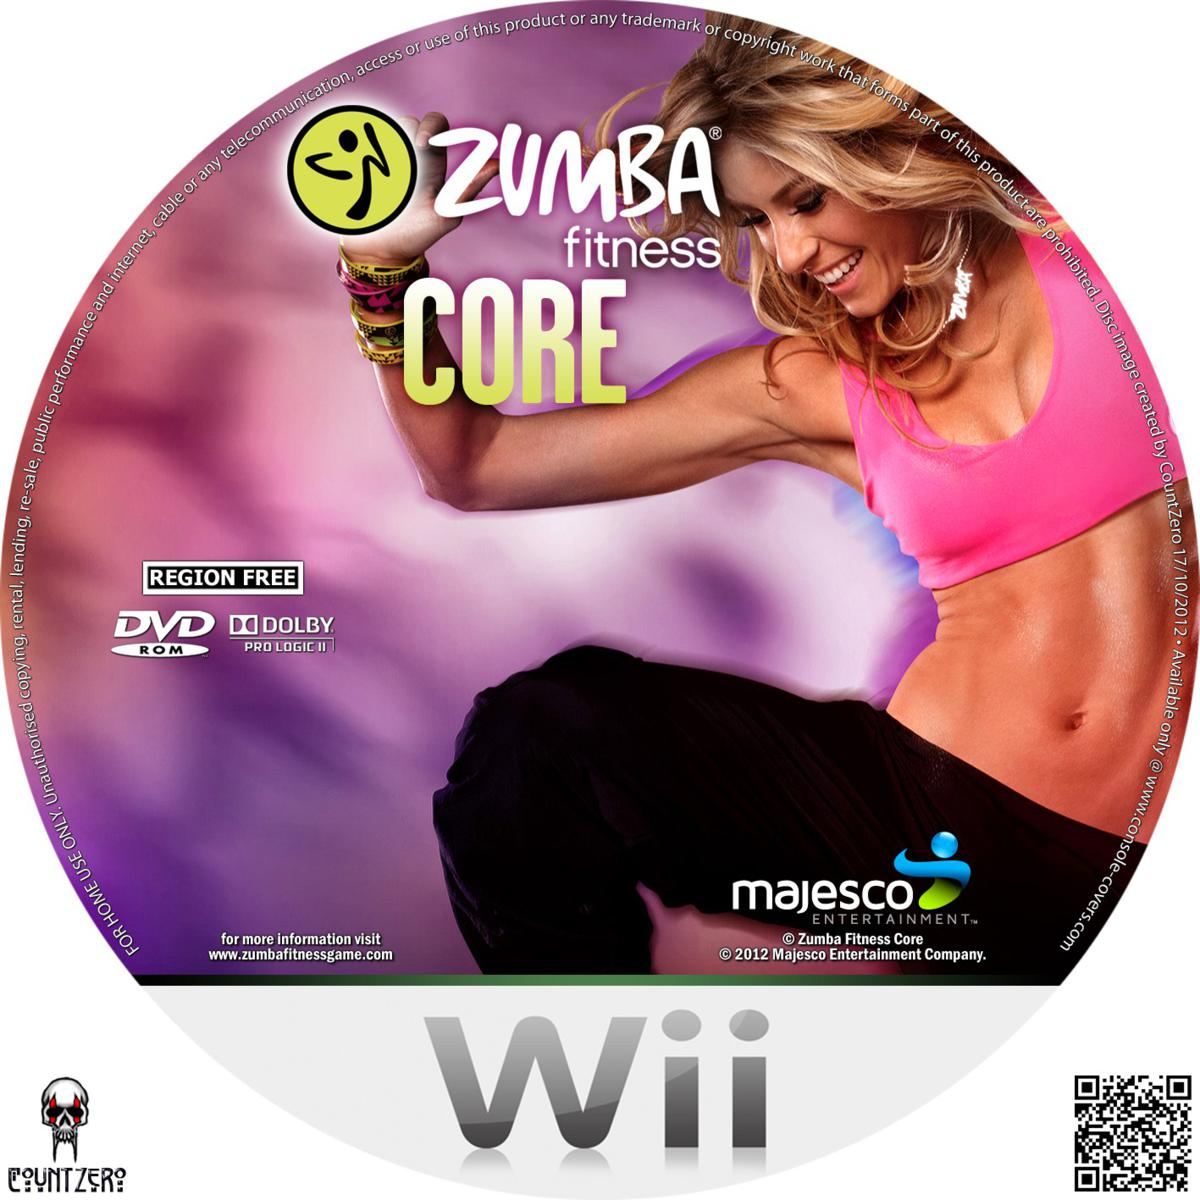 label zumba fitness core wii gamecover capas customizadas para dvd e bluray. Black Bedroom Furniture Sets. Home Design Ideas